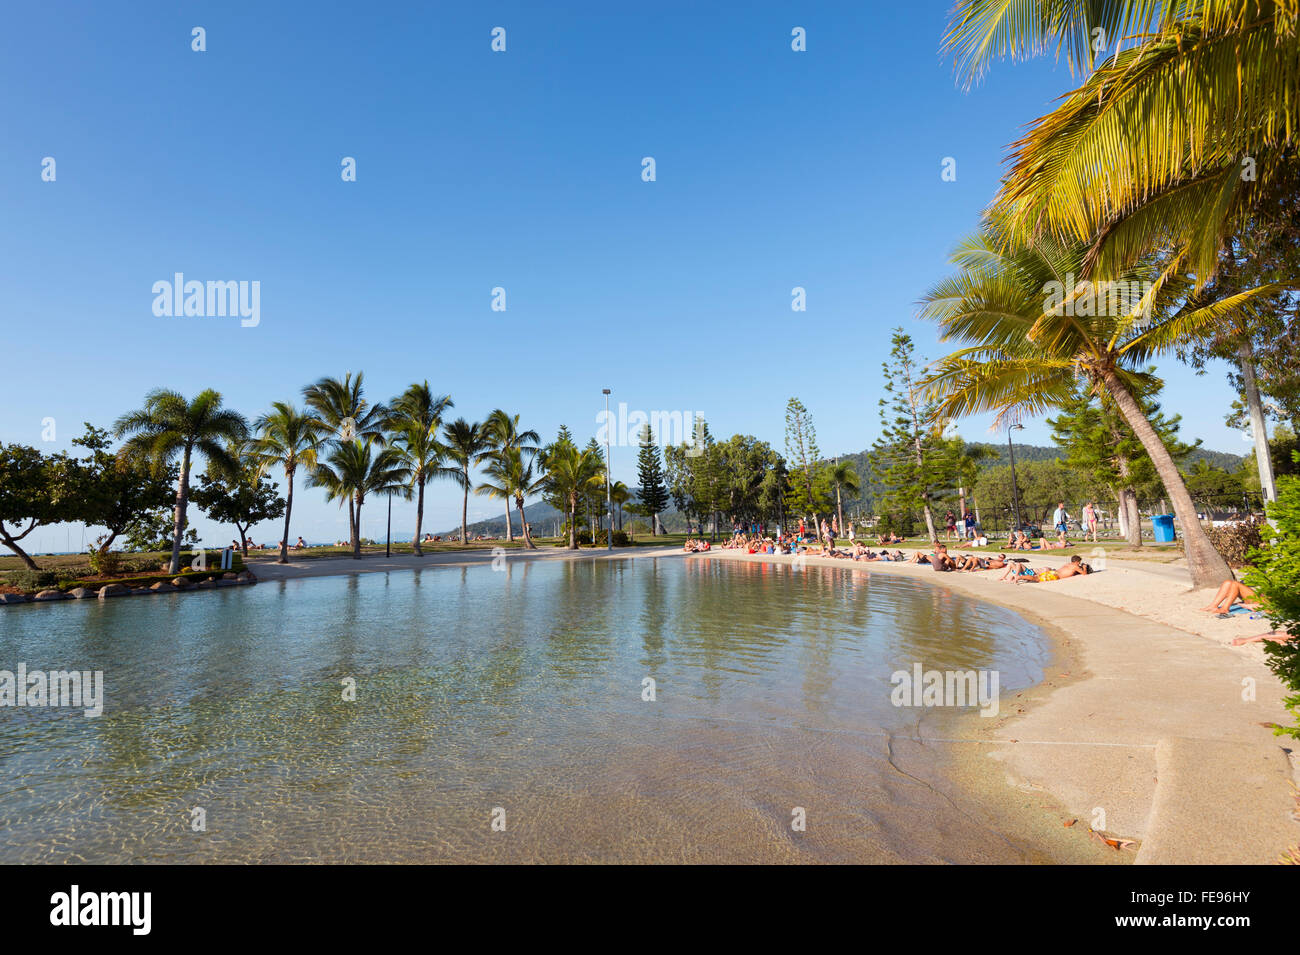 The Lagoon, Airlie Beach, Whitsunday Coast, Queensland, Australia - Stock Image